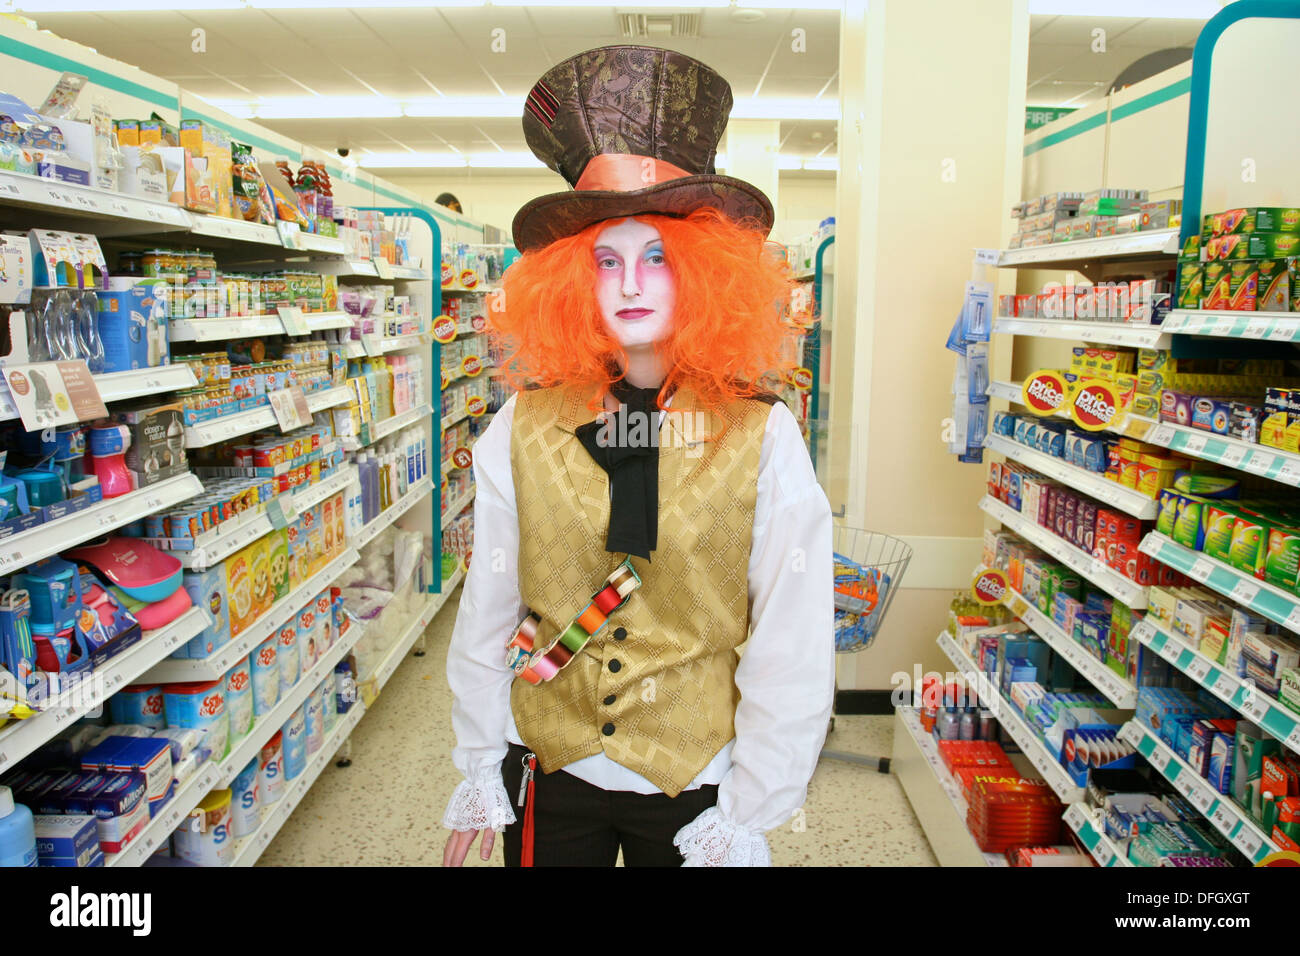 Supermarket attendant in Halloween fancy dress costume as 'The Hatter' from Alice's Adventures in Wonderland. UK - Stock Image